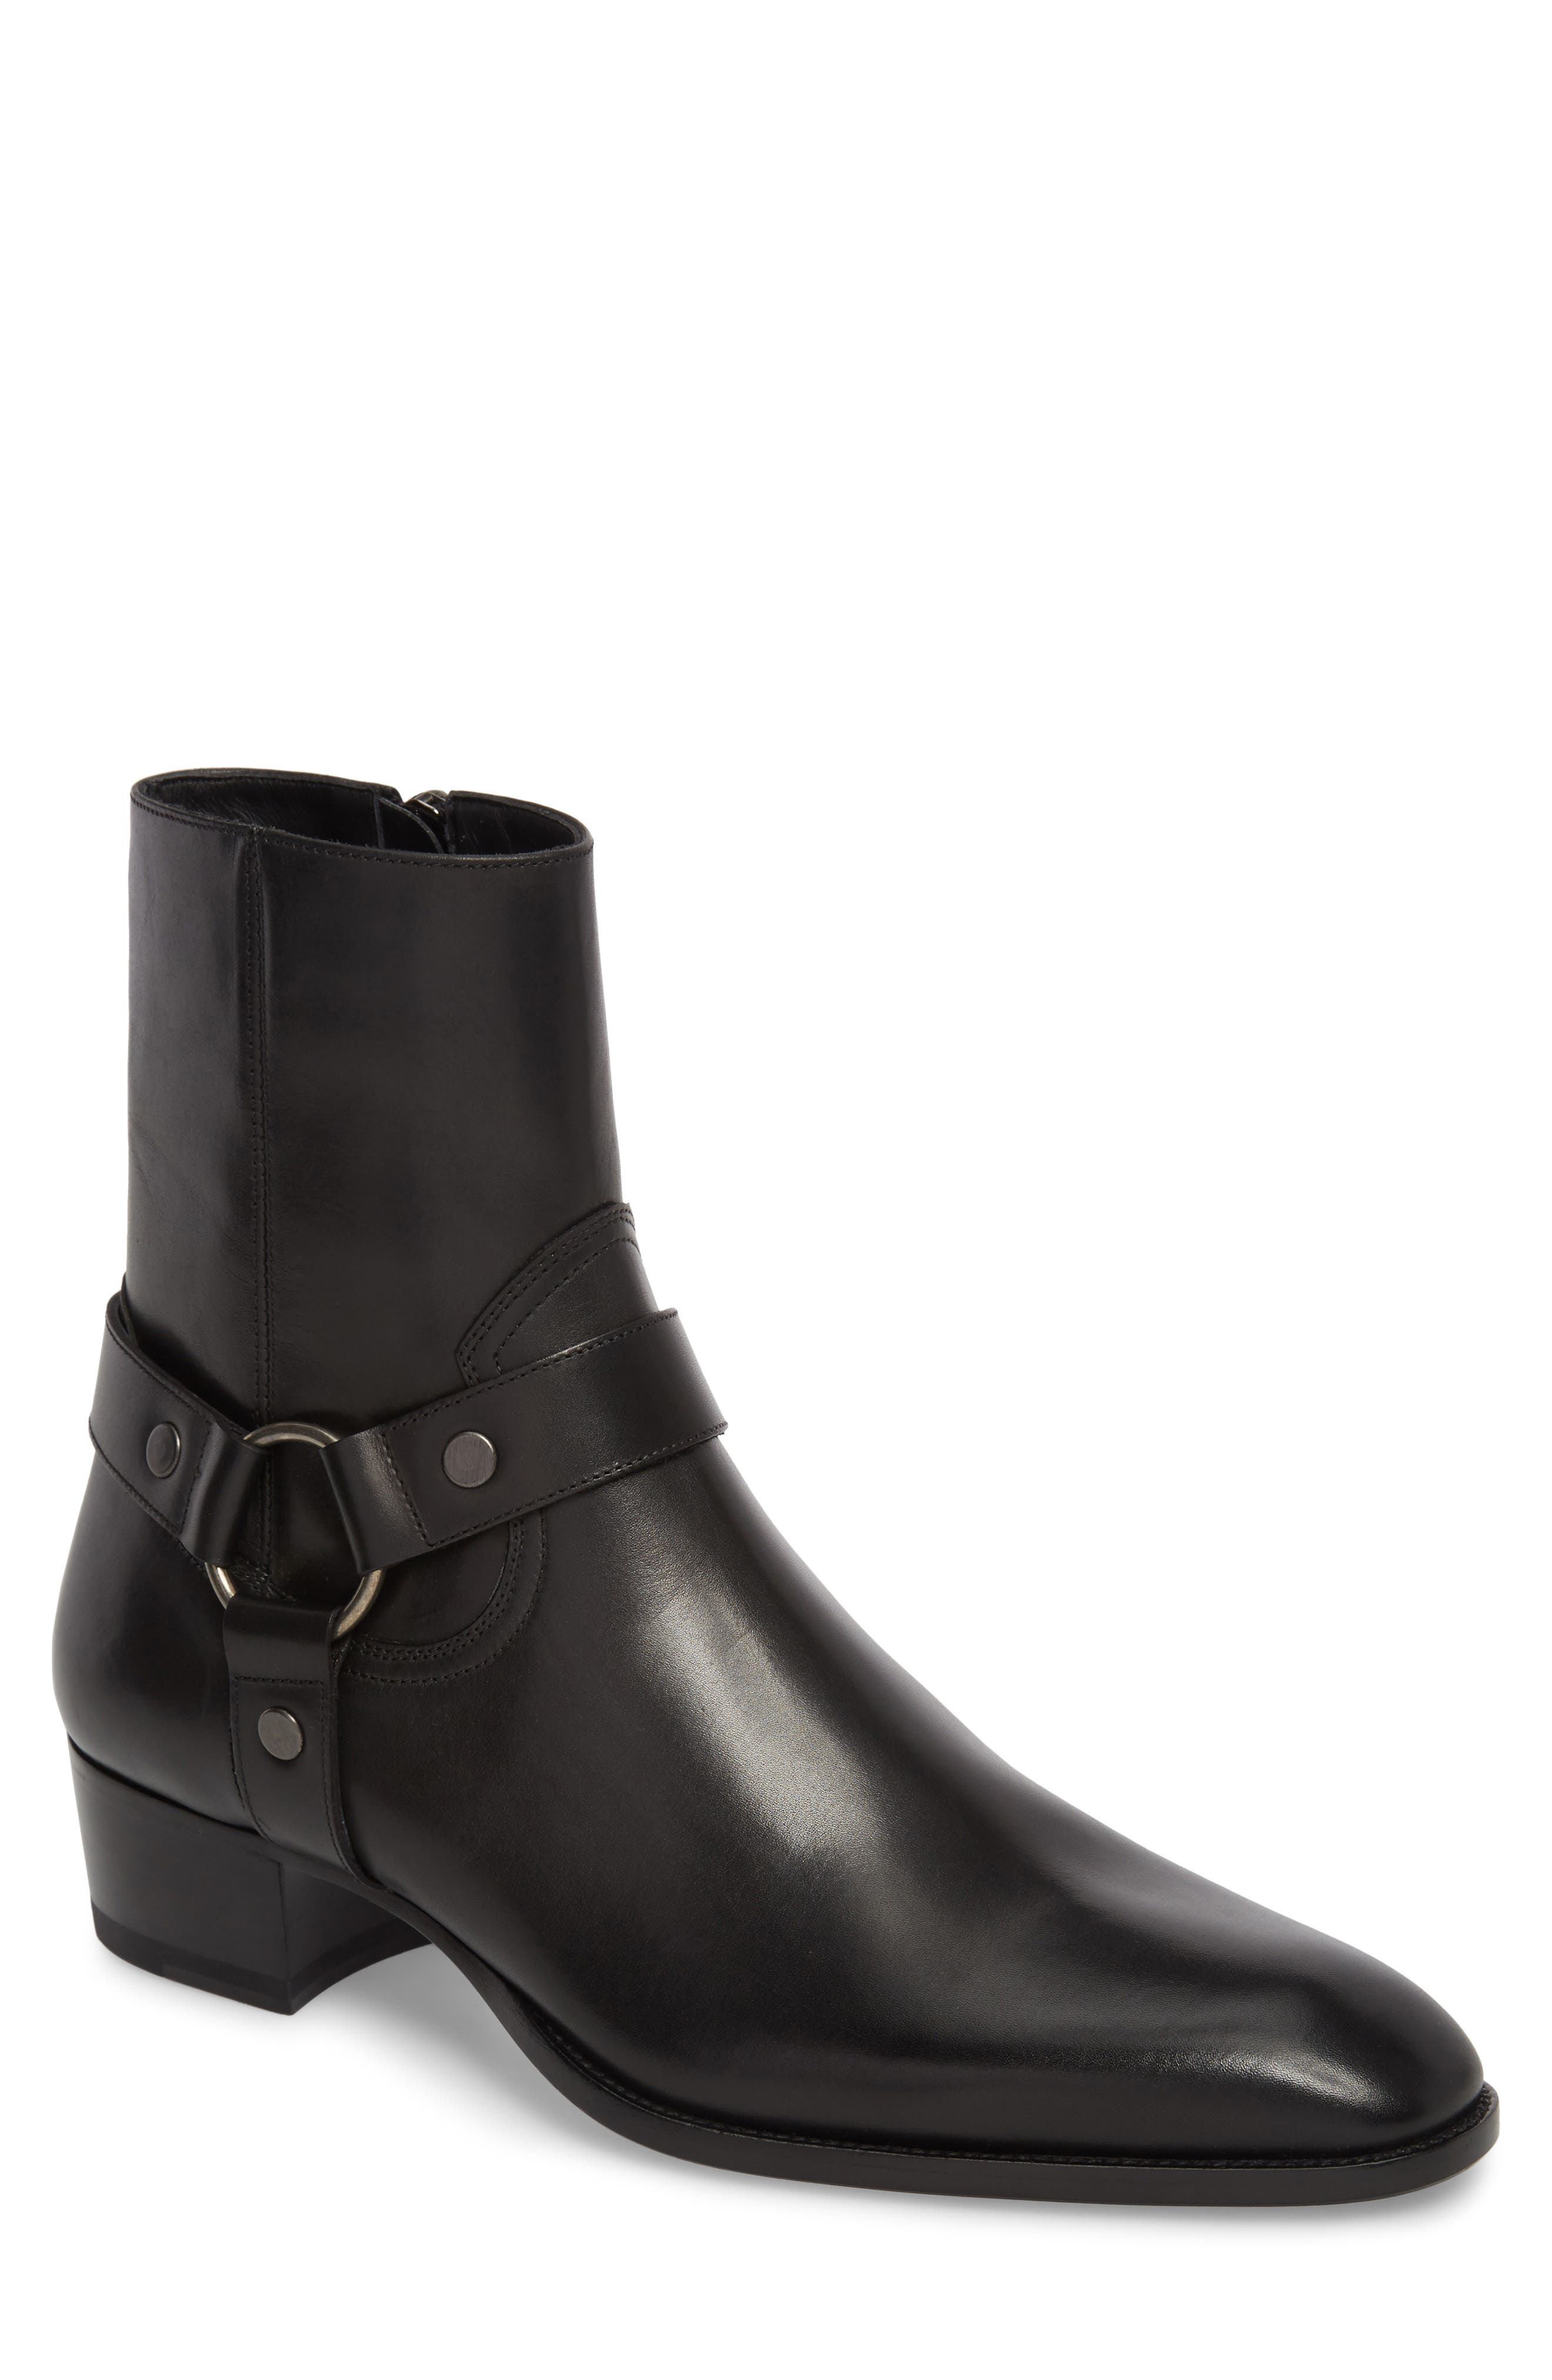 Wyatt Harness Boot,                         Main,                         color, BLACK LEATHER